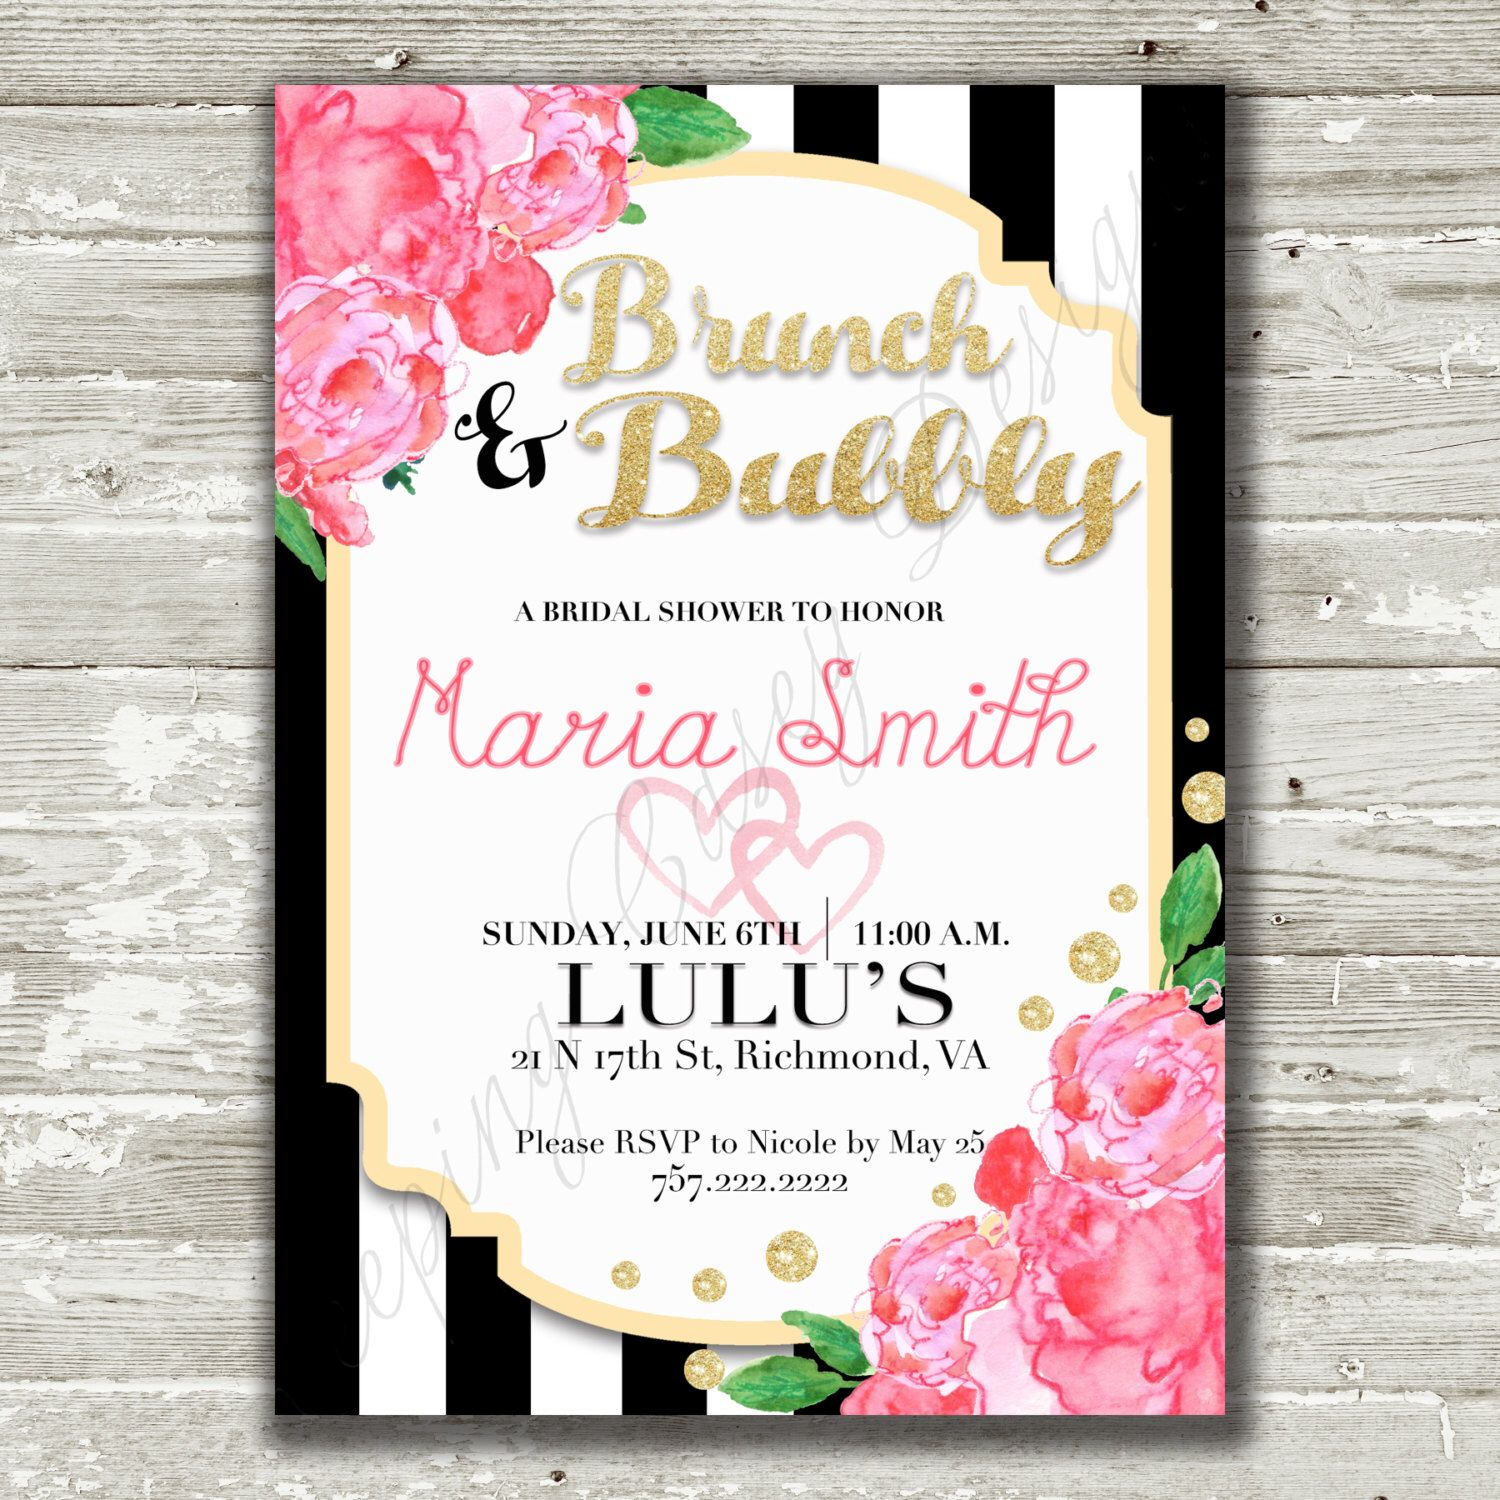 Kate Spade Inspired Bridal Shower Invitation Brunch And Bubbly Stripes